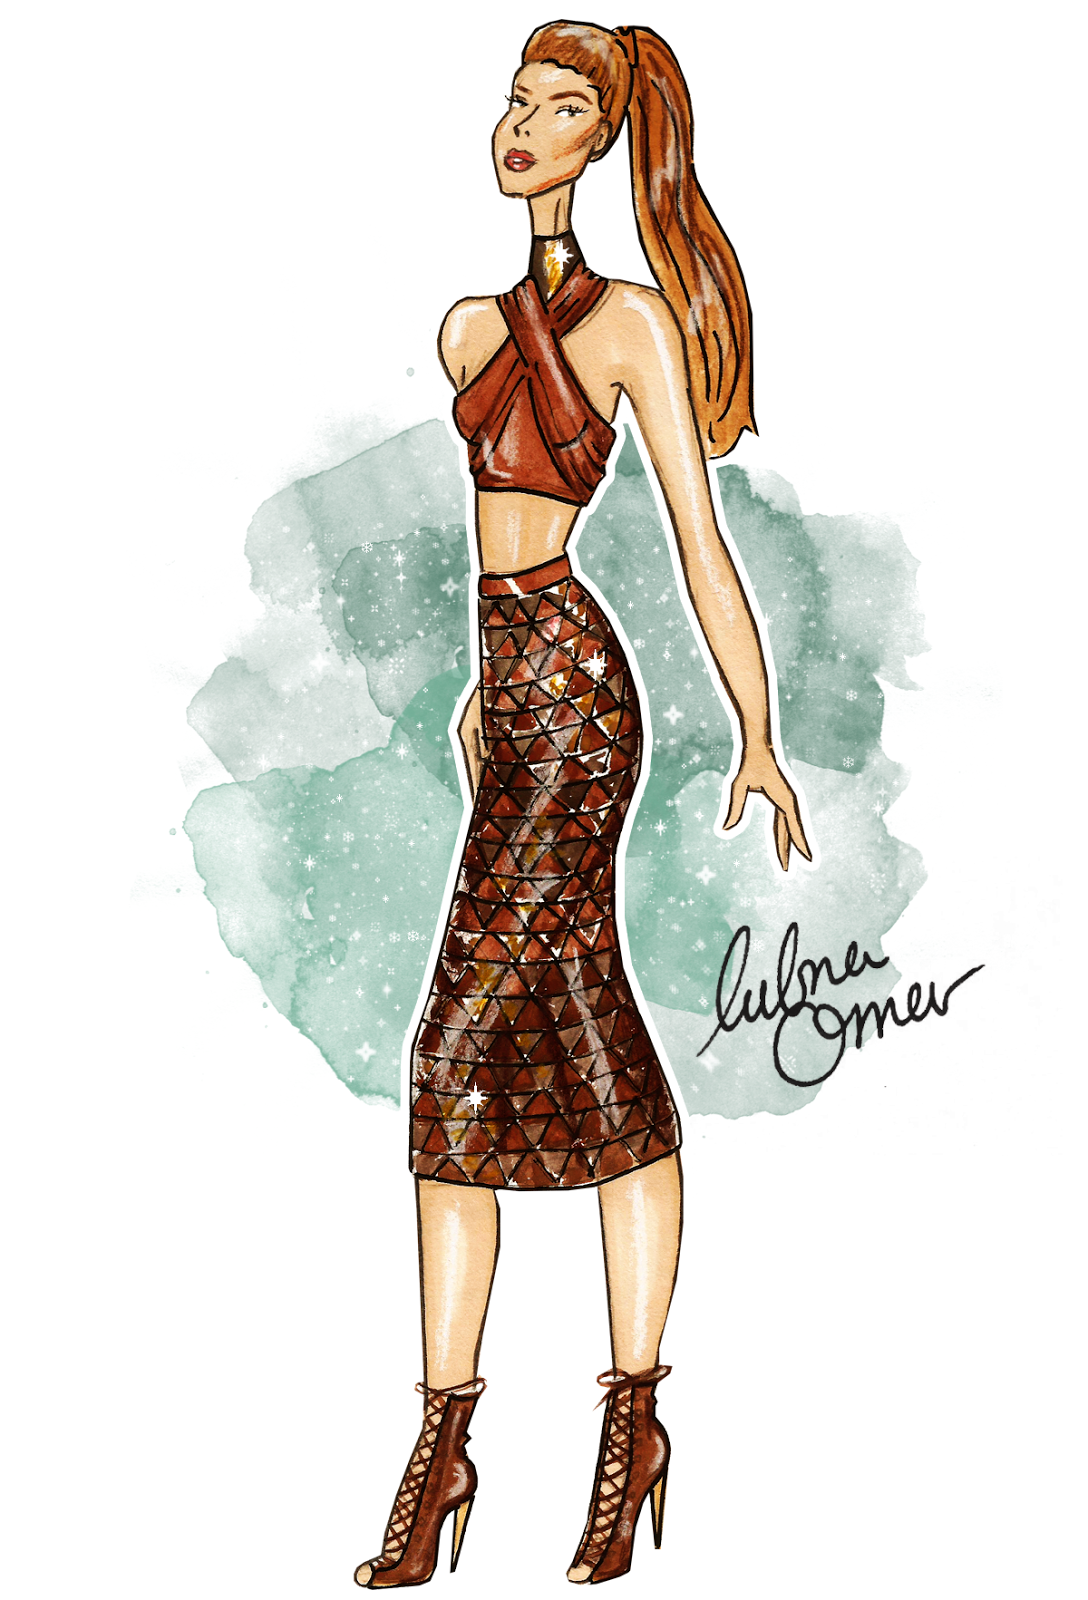 Gigi Hadid in Balmain SS16 illustration by Lubna Omar